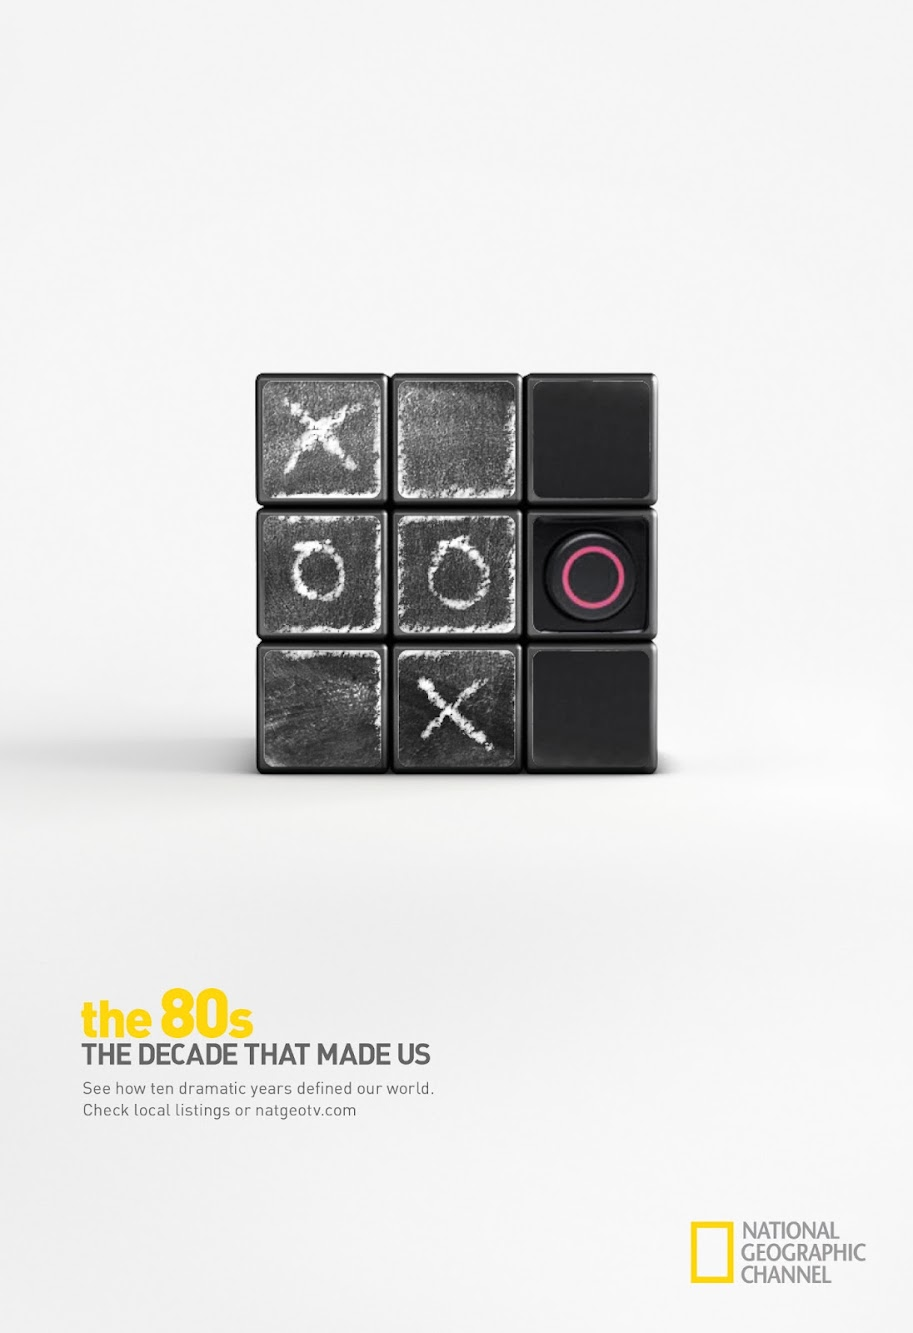 National Geographic Rubik's Cube As A Cool Storytelling Device — The 80's Print and TV Ad Campaign